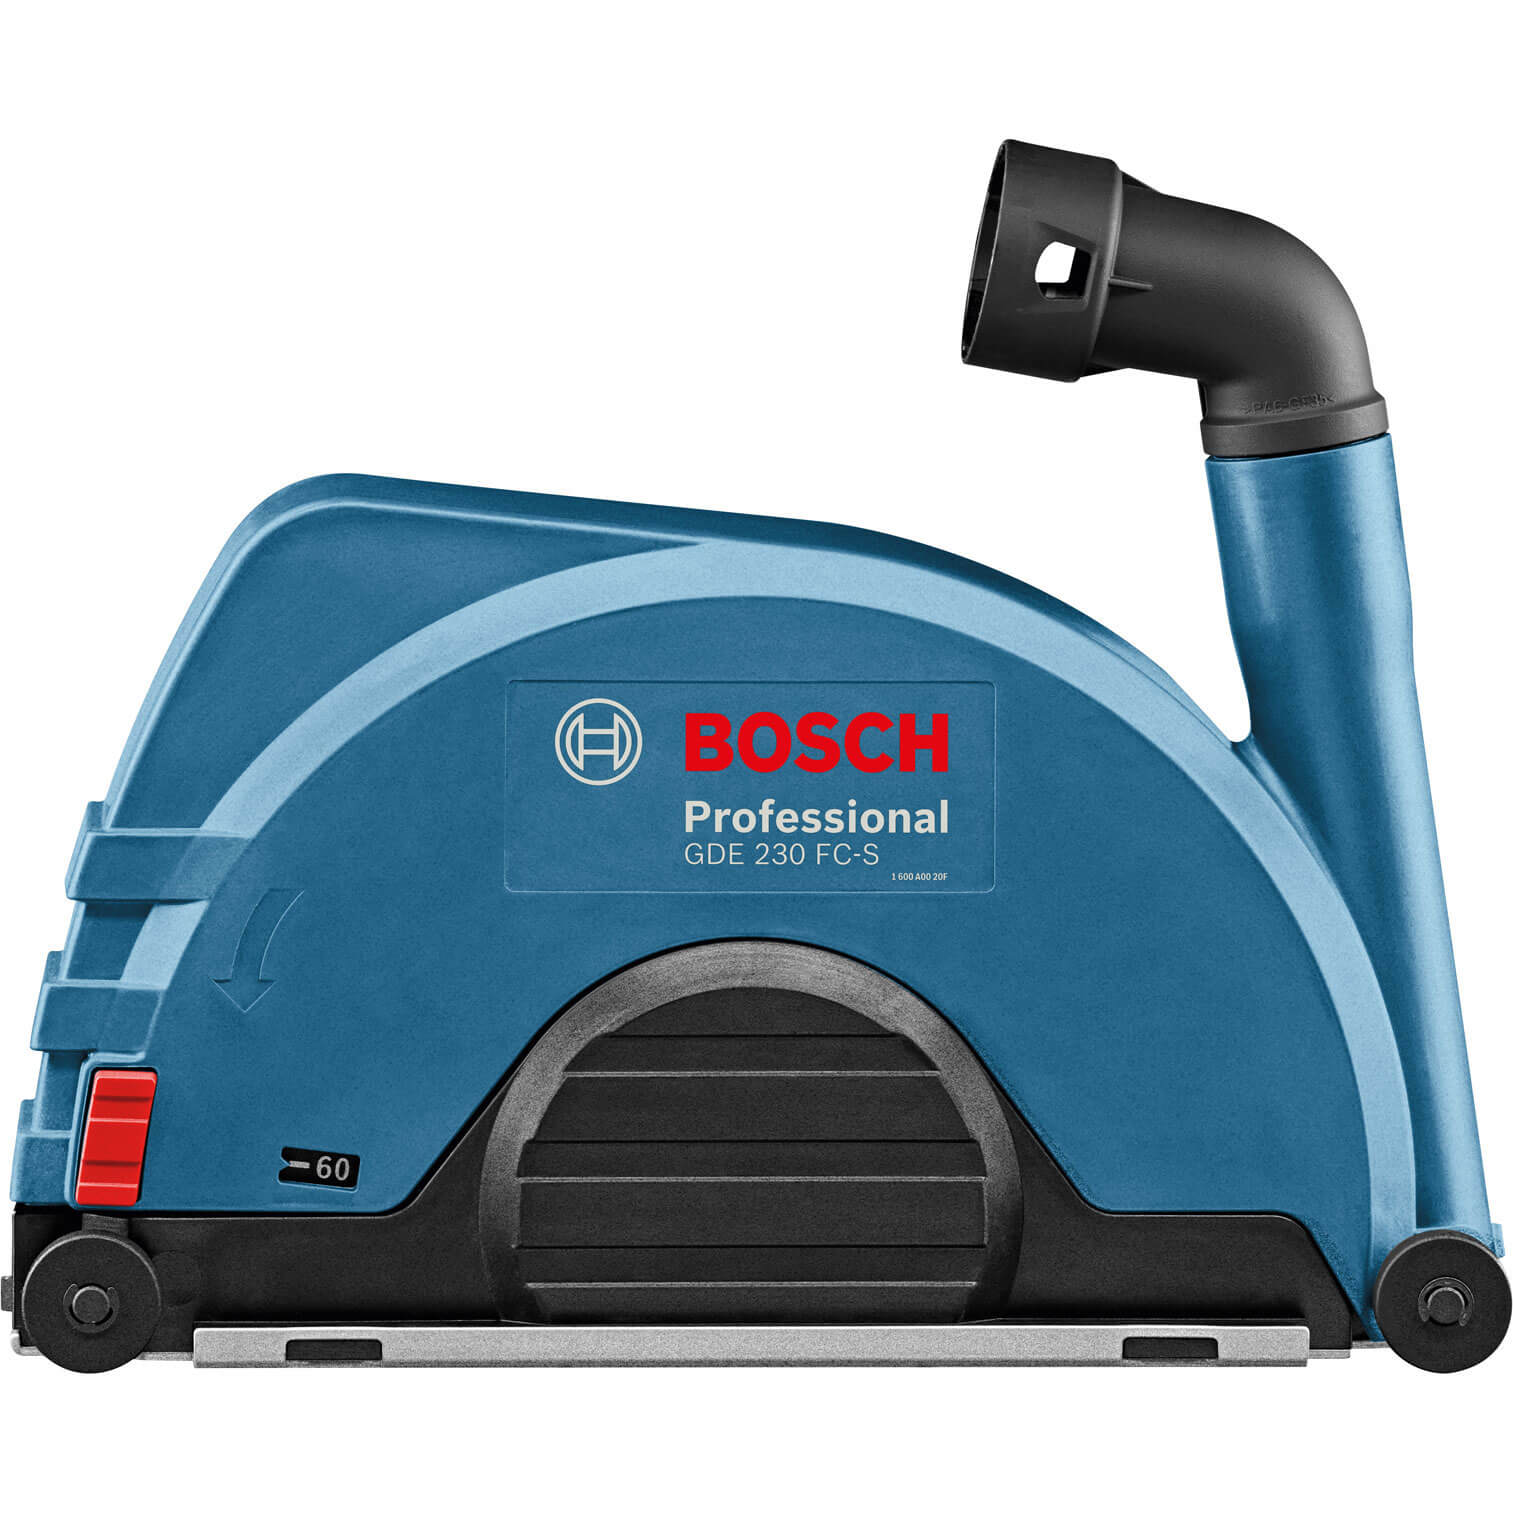 Image of Bosch GDE 230 FC-S Angle Grinder Dust Guard 230mm